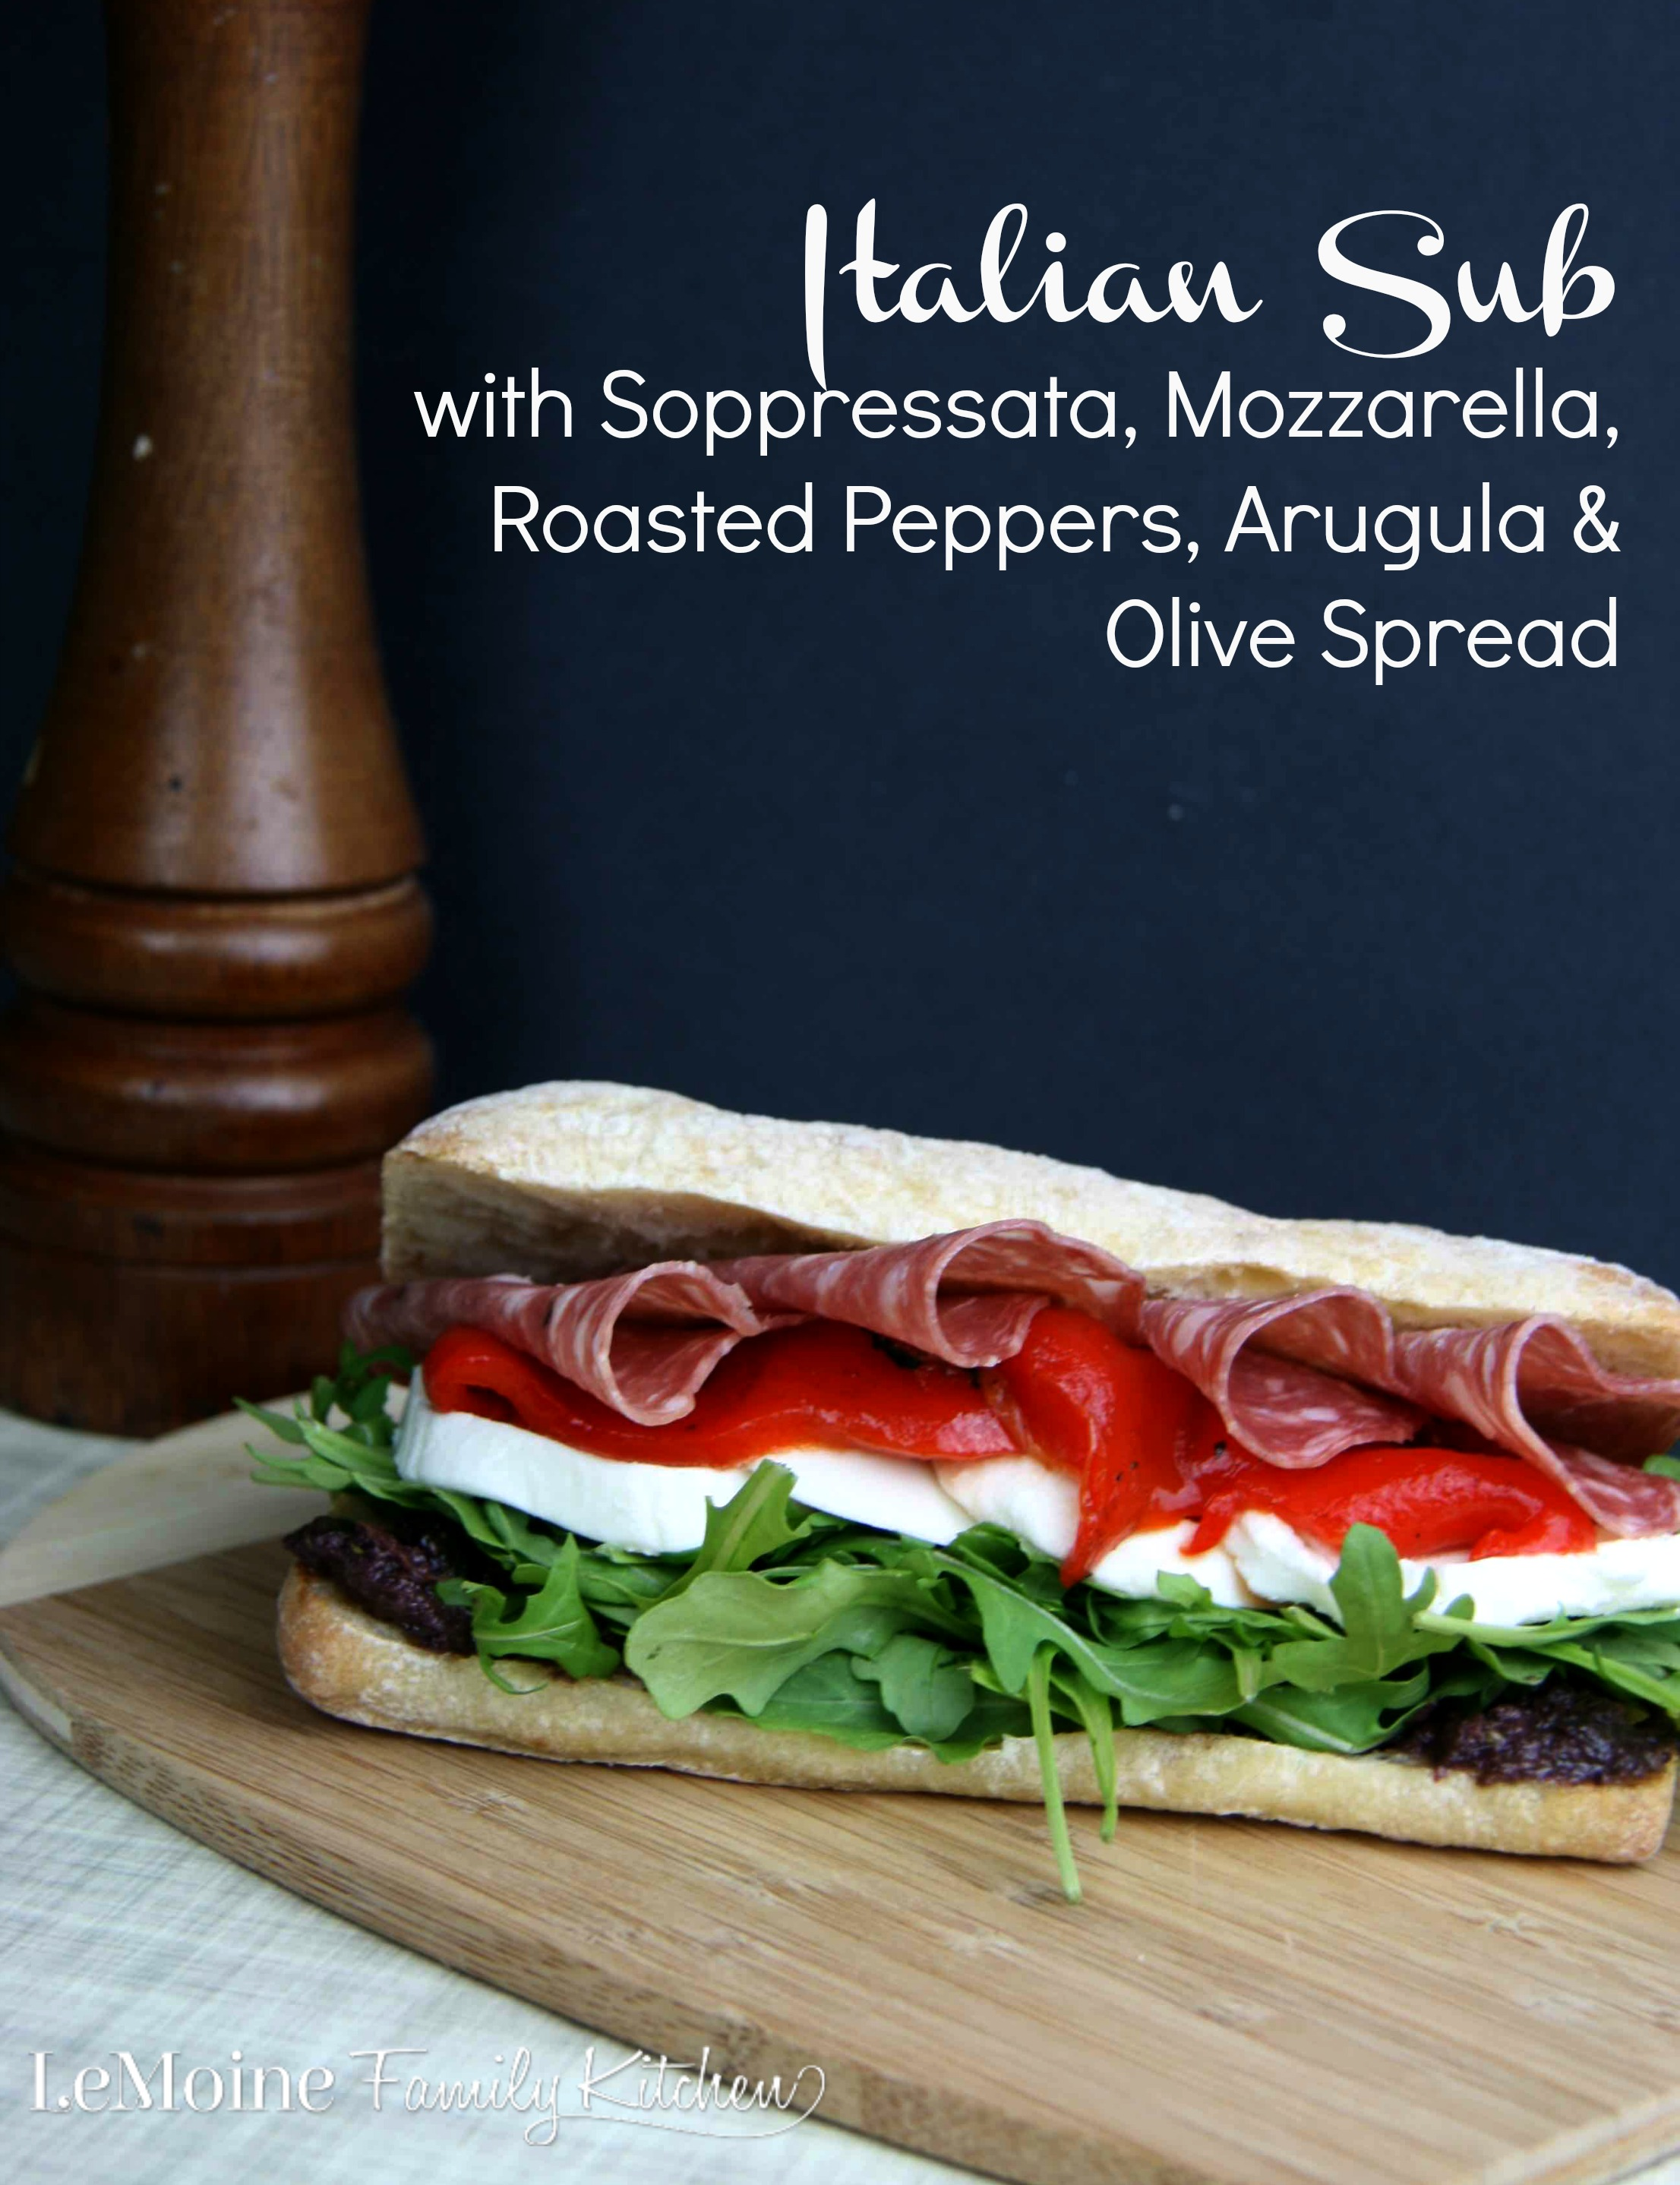 Italian Sub with Soppressata, Mozzarella, Roasted Peppers, Arugula & Olive Spread | LeMoine Family Kitchen